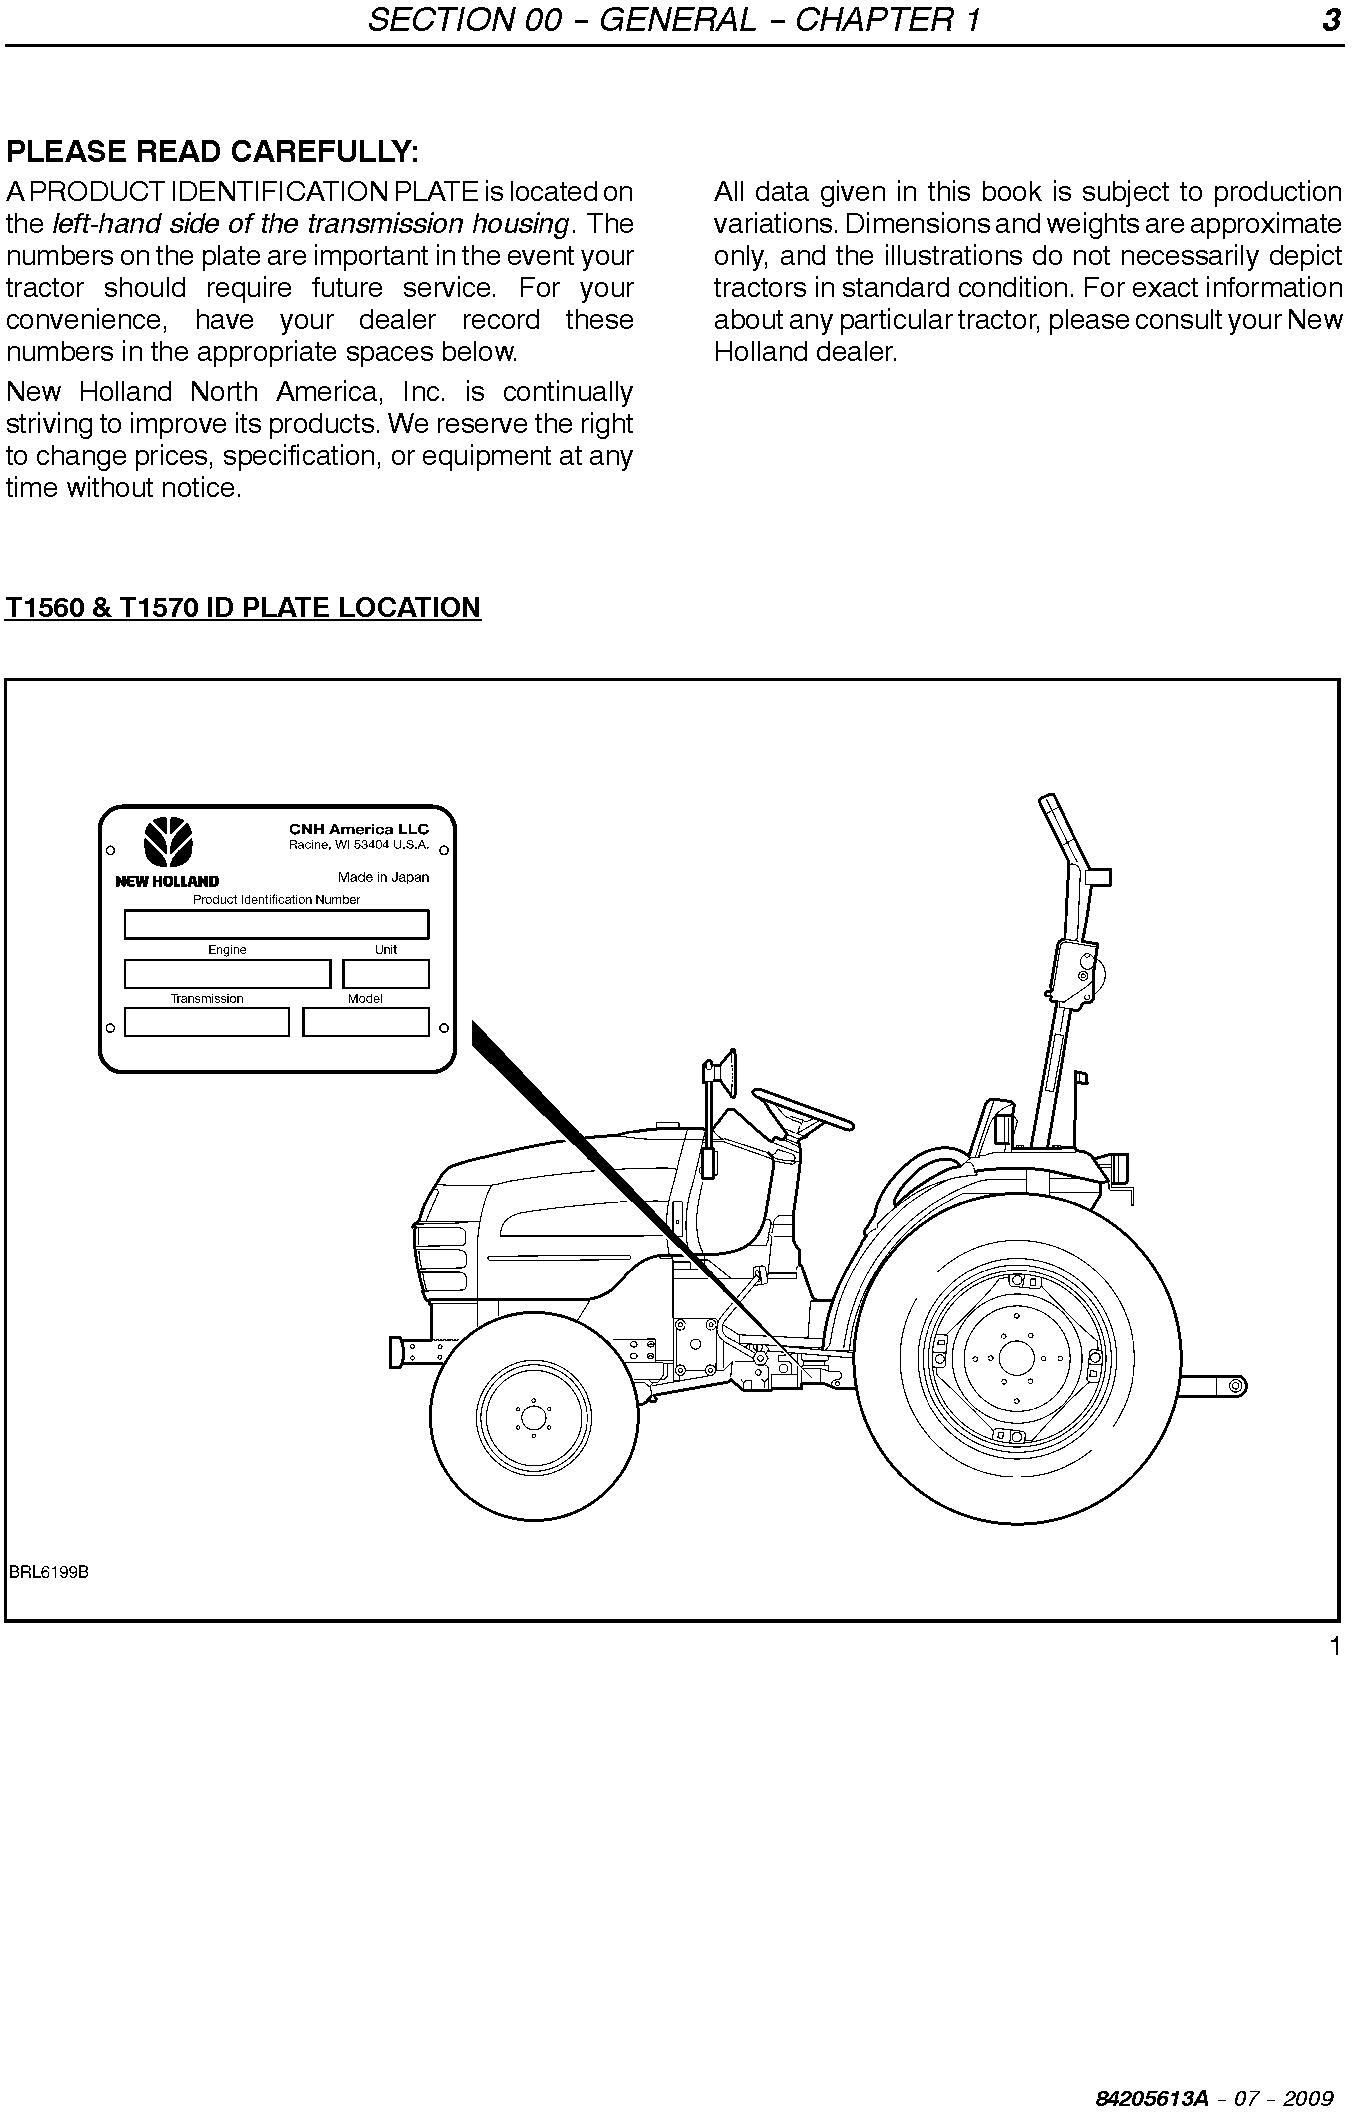 New Holland T1560, T1570 Compact Tractor Service Manual - 1